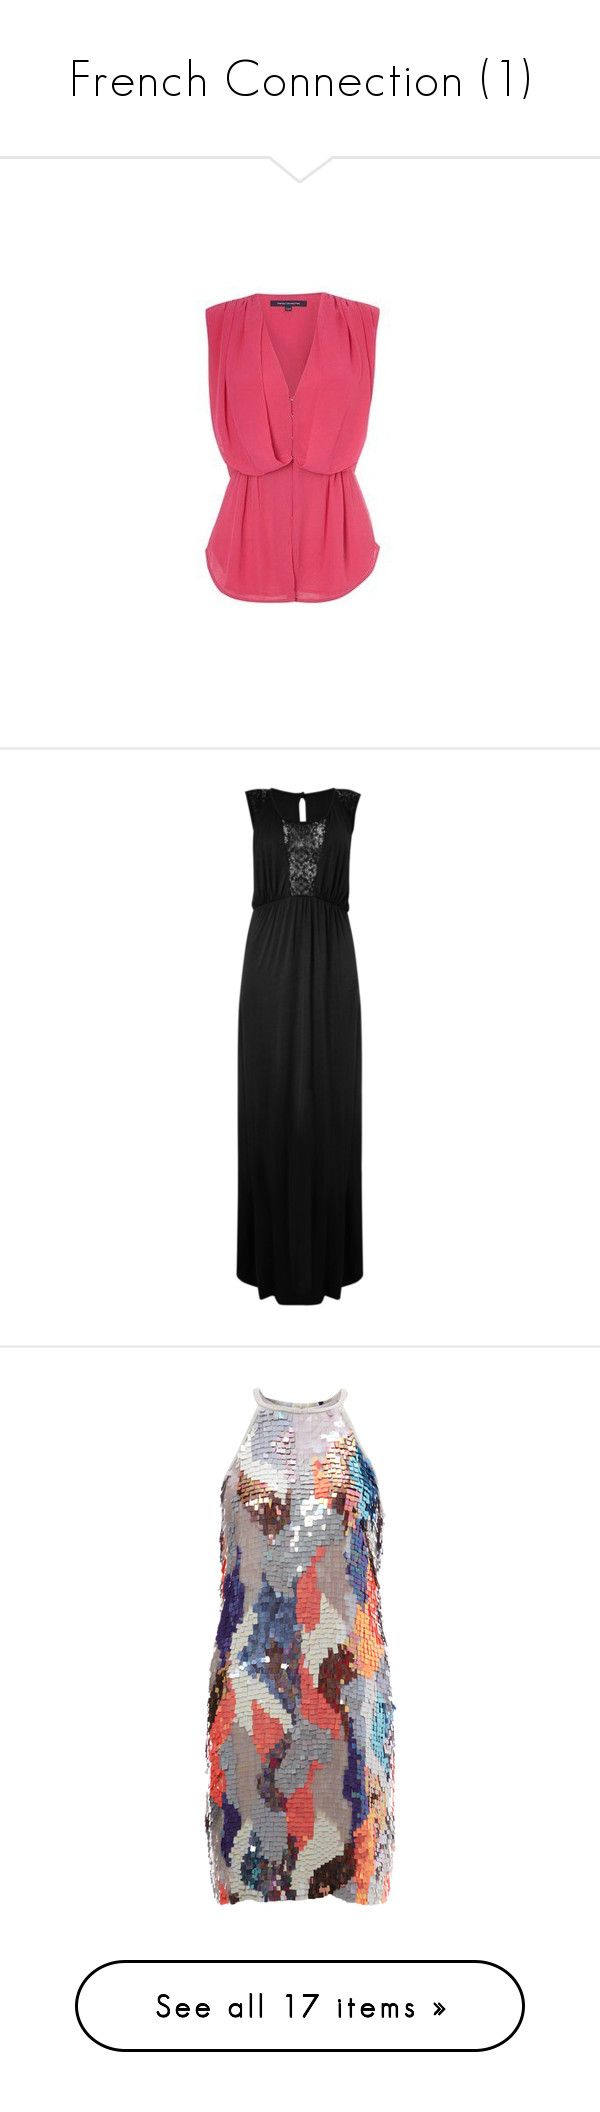 """""""French Connection (1)"""" by brittneysaysrawrrr ❤ liked on Polyvore featuring tops, tanks, french connection, pink top, checkered top, french connection tops, dresses, embroidery maxi dress, ruched maxi dress and round neck dress"""